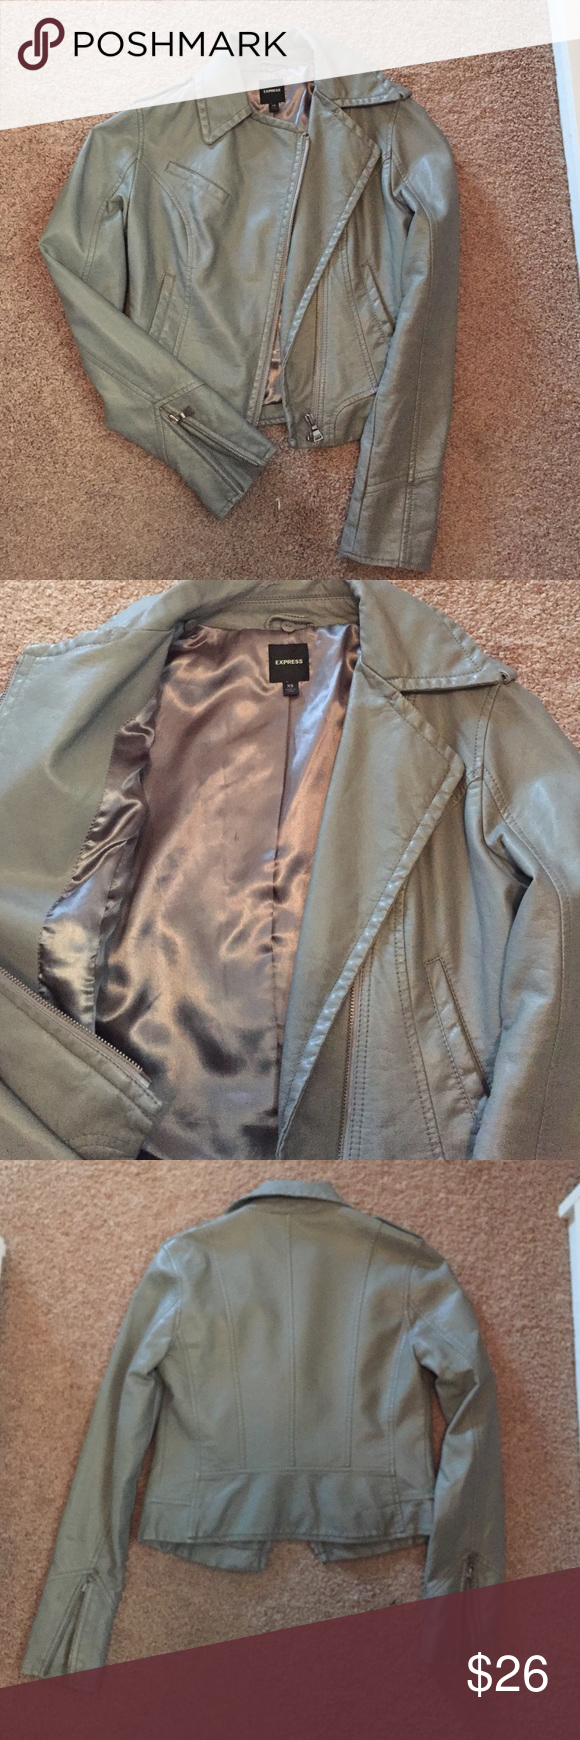 Grey leather jacket, Express, XS Good condition Express Jackets & Coats